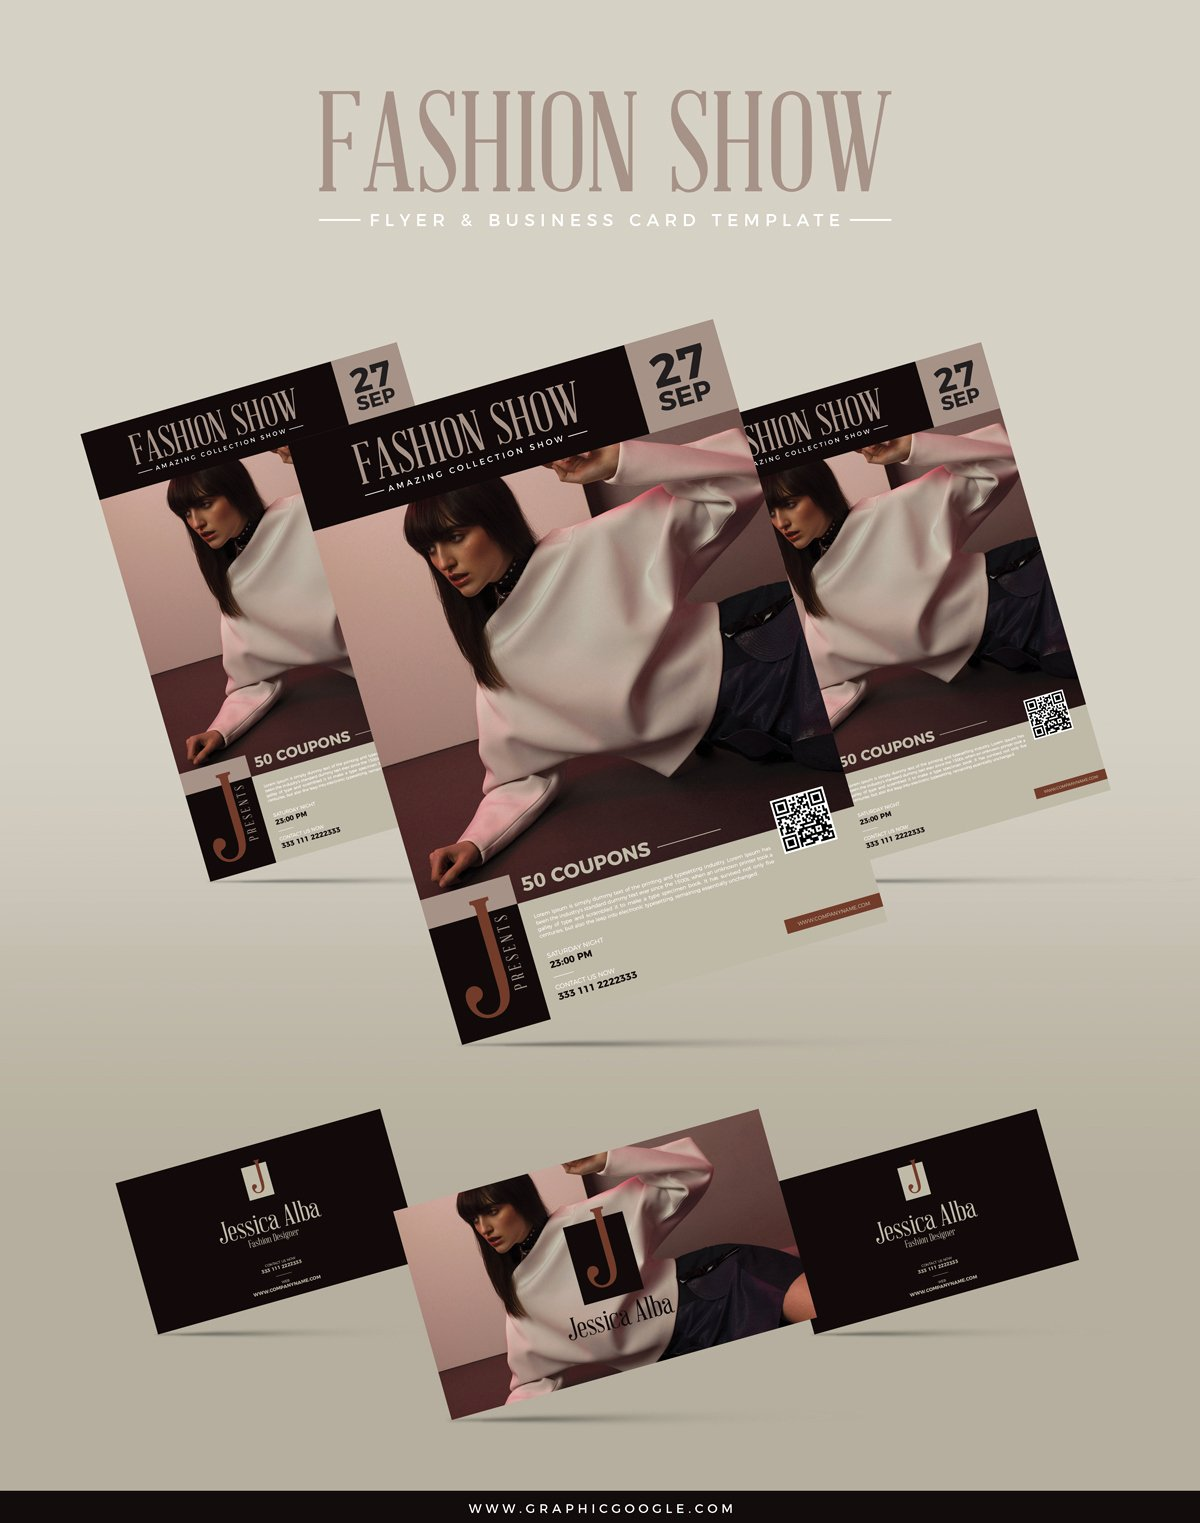 Fashion Show Flyer Template Awesome Free Fashion Show Flyer & Business Card Templategraphic